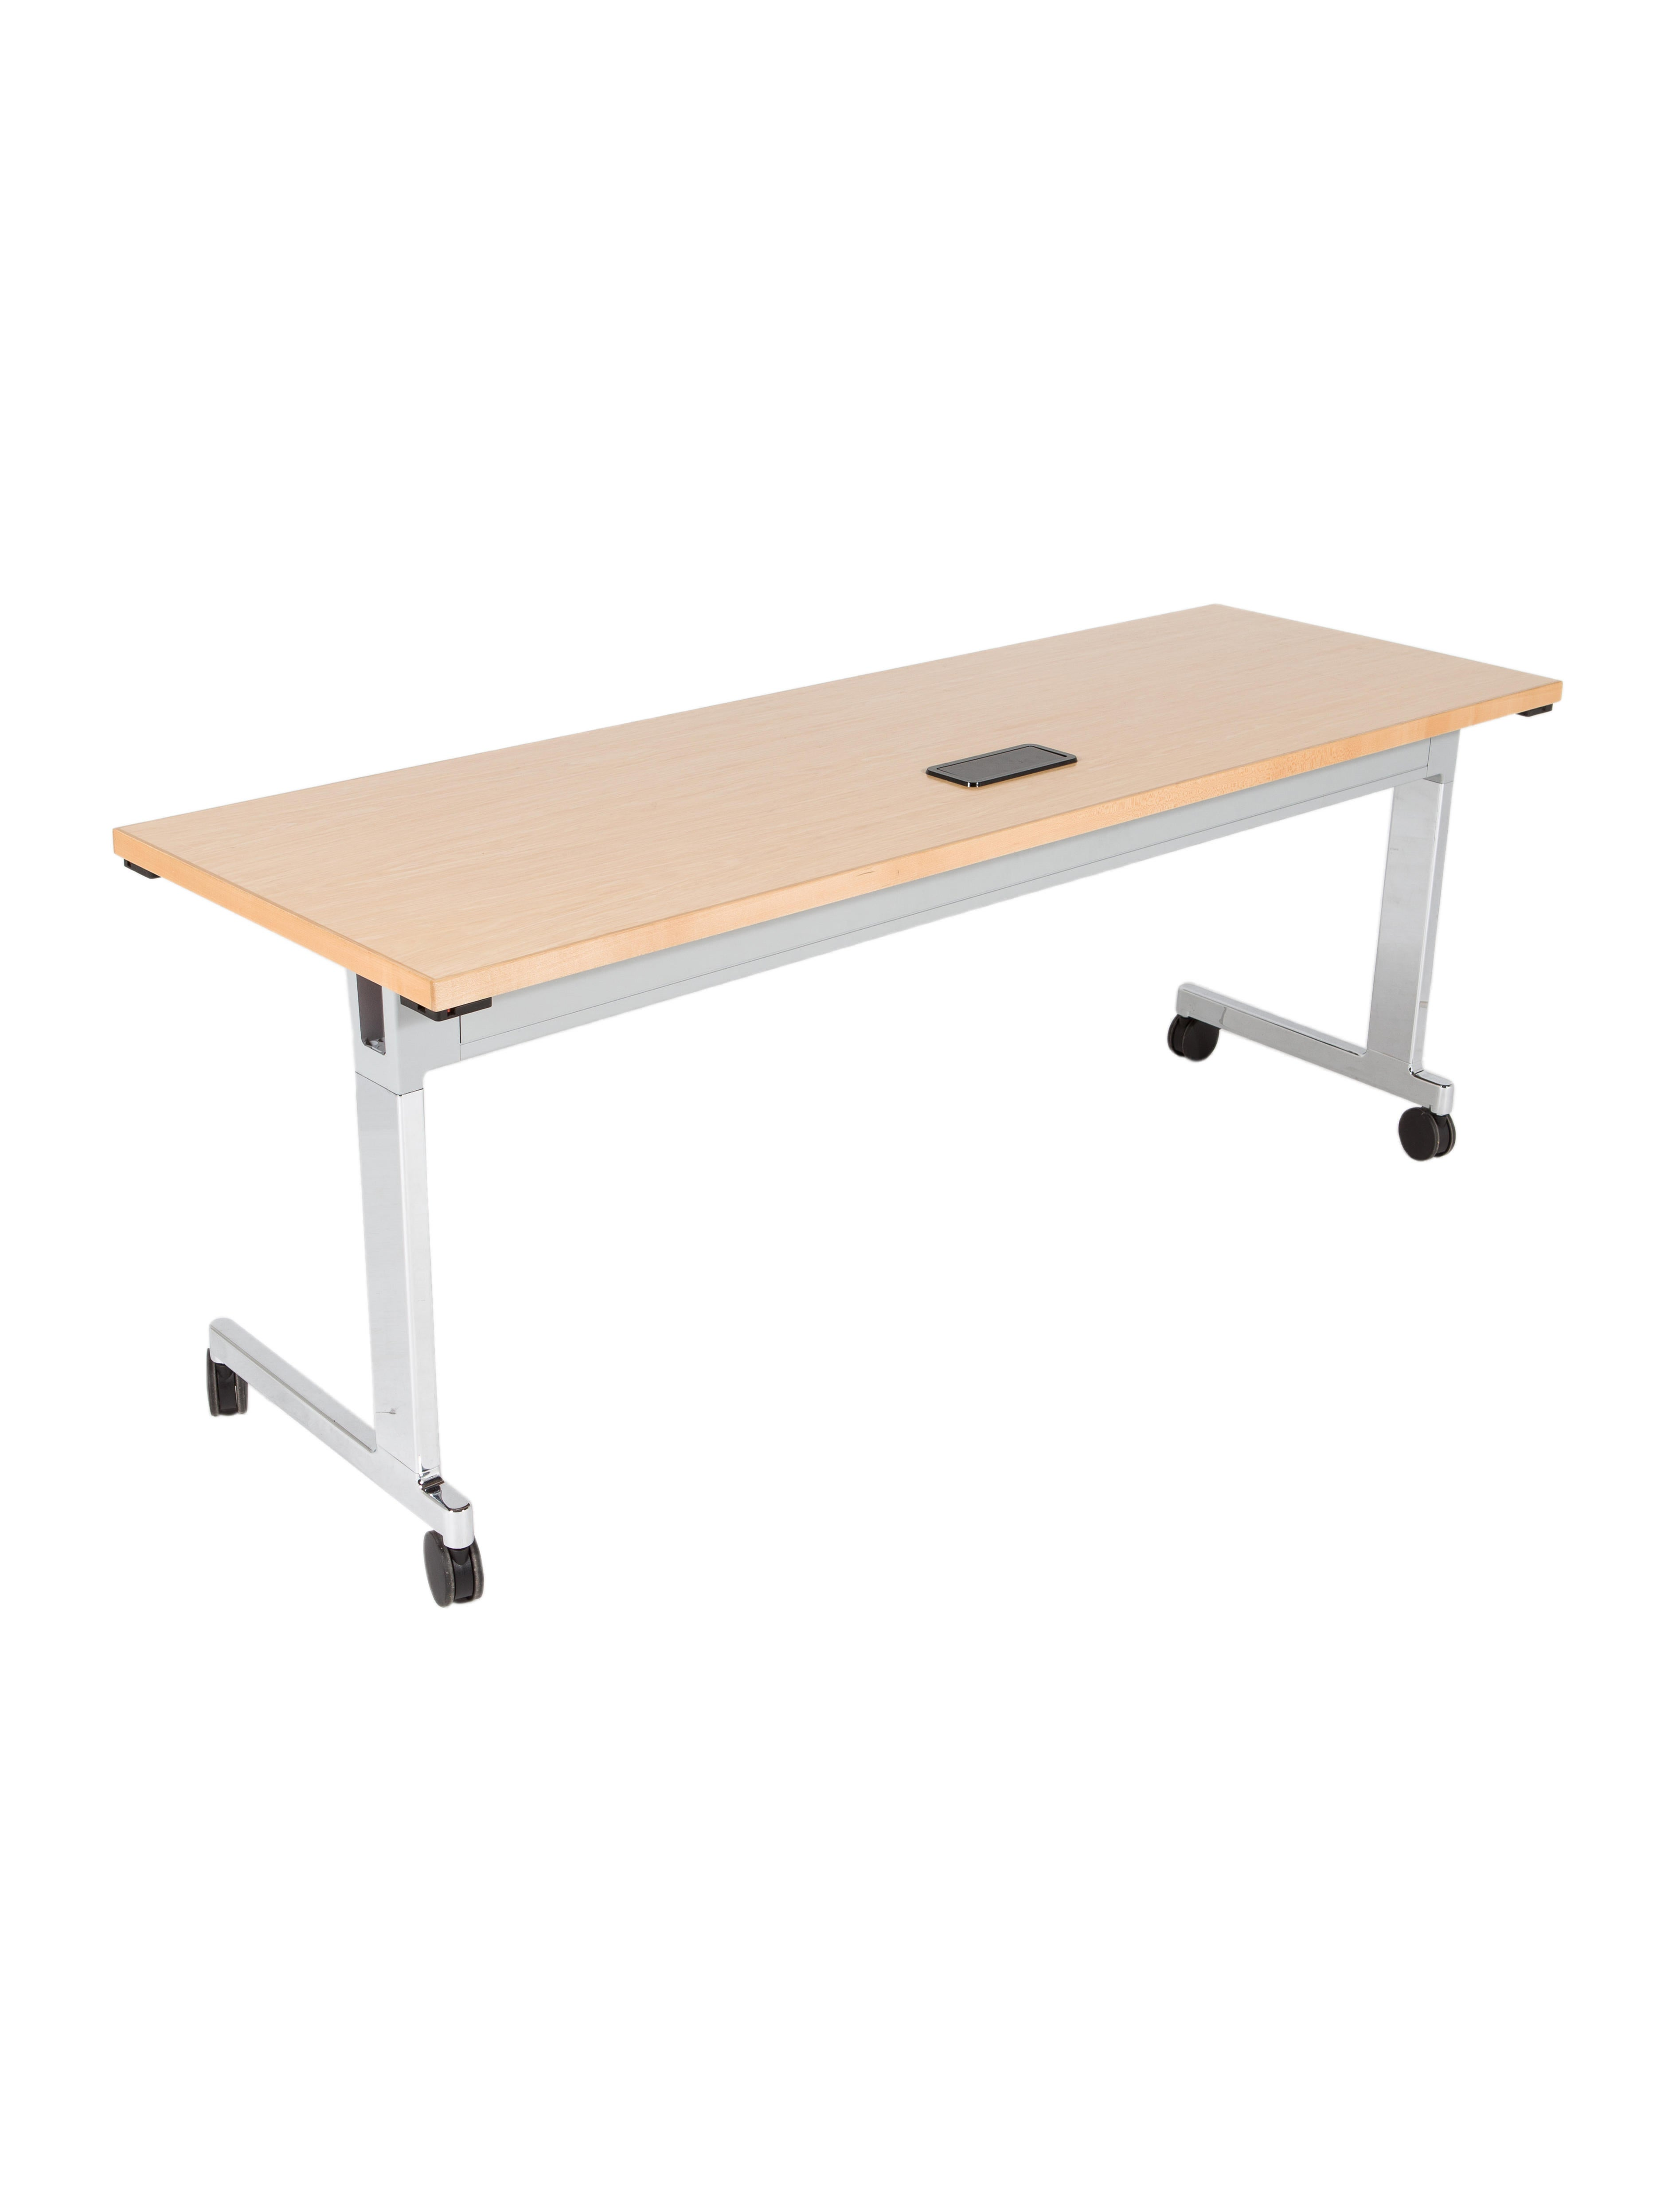 Knoll Pixel T Leg Desk Furniture Knl20169 The Realreal